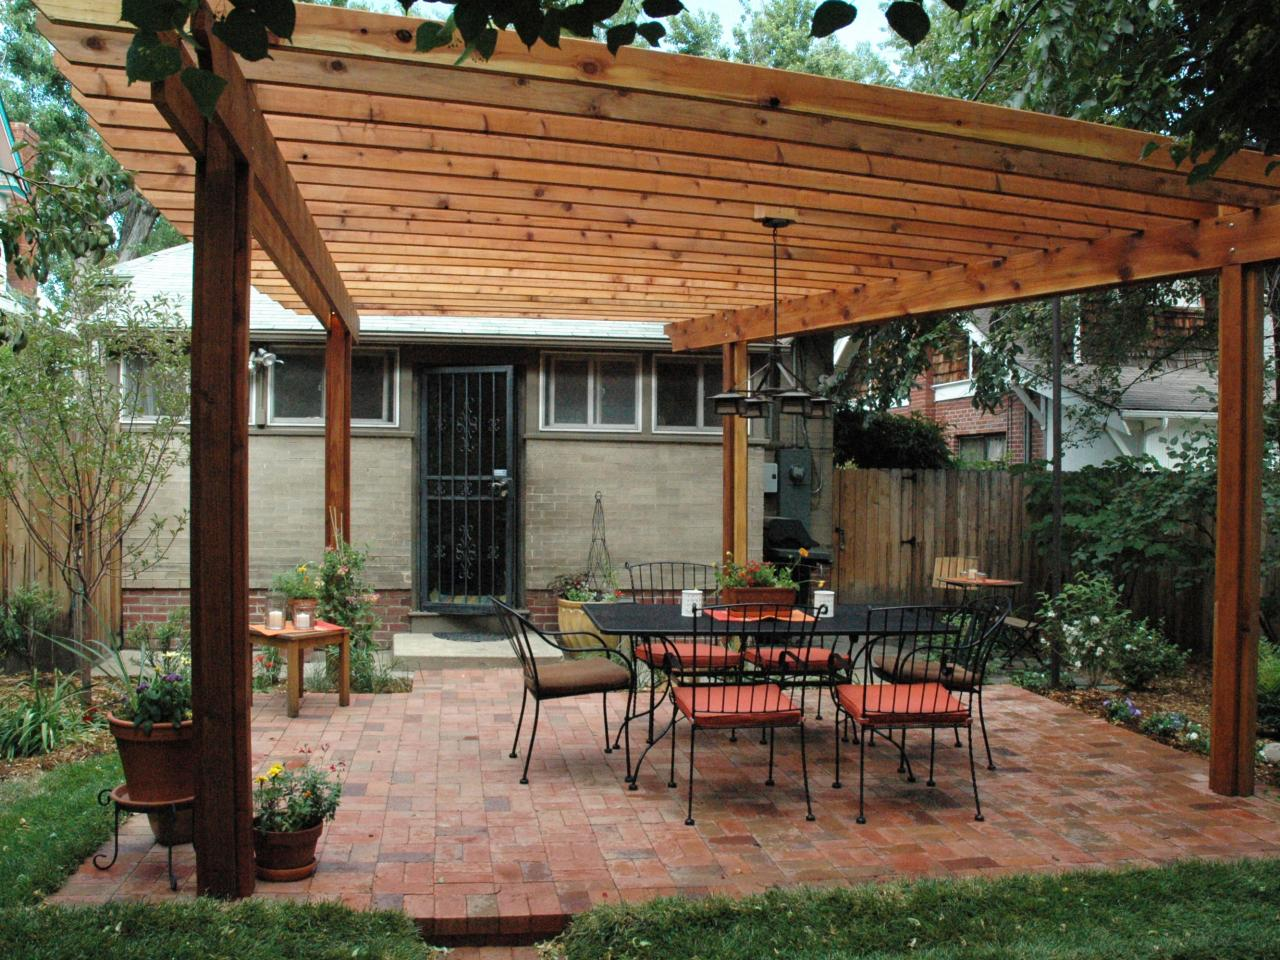 Arbor Installation-Texarkana TX Professional Landscapers & Outdoor Living Designs-We offer Landscape Design, Outdoor Patios & Pergolas, Outdoor Living Spaces, Stonescapes, Residential & Commercial Landscaping, Irrigation Installation & Repairs, Drainage Systems, Landscape Lighting, Outdoor Living Spaces, Tree Service, Lawn Service, and more.